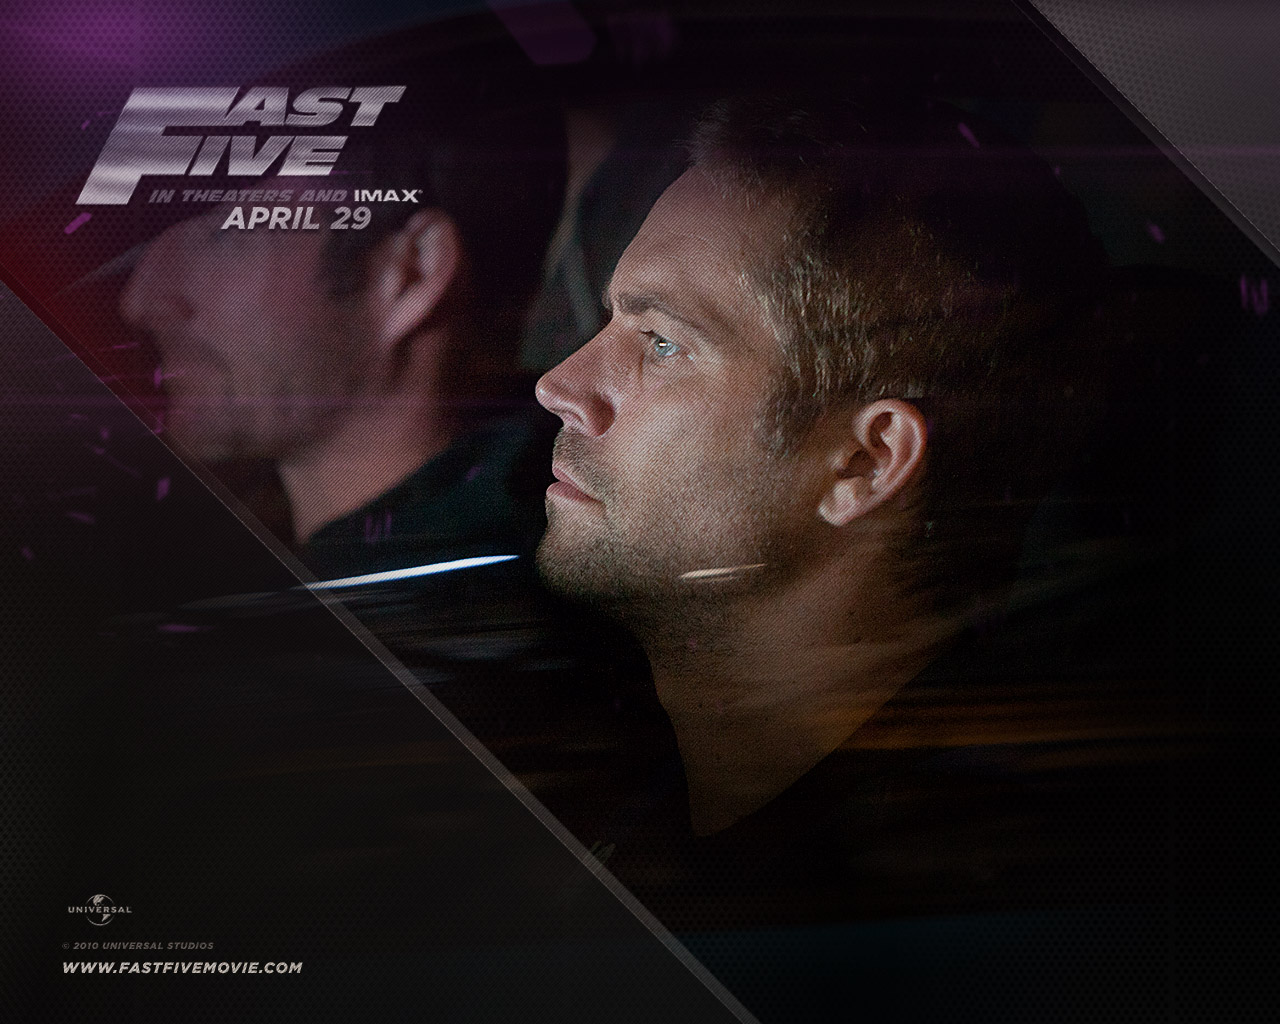 Fast five latest trailer and wallpapers 187 paul walker in fast five